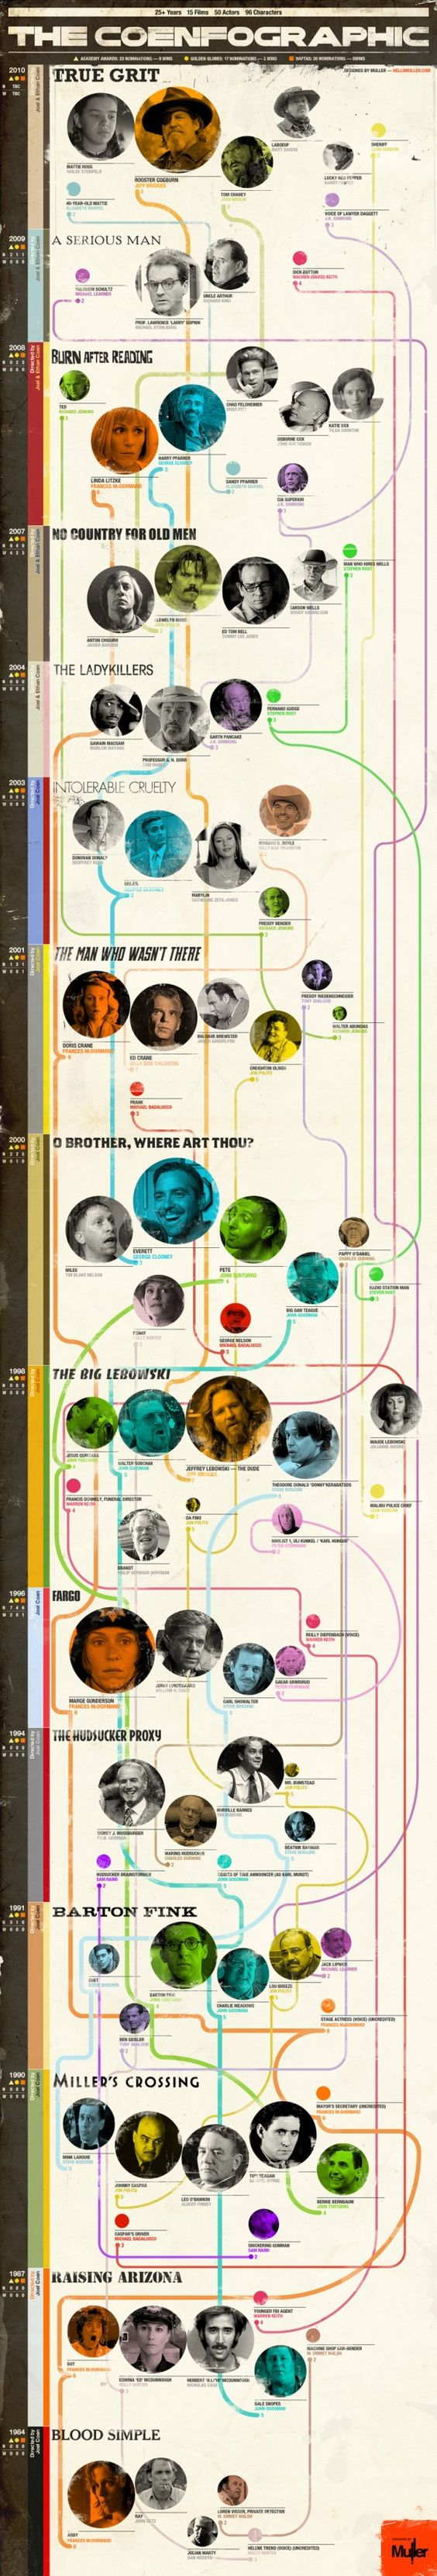 The Coenfographic has premiered. Tom Muller illustrates The #Coen Brothers' #Movies, Characters, and their connection to each other in an extensive graphic poster. #infographic